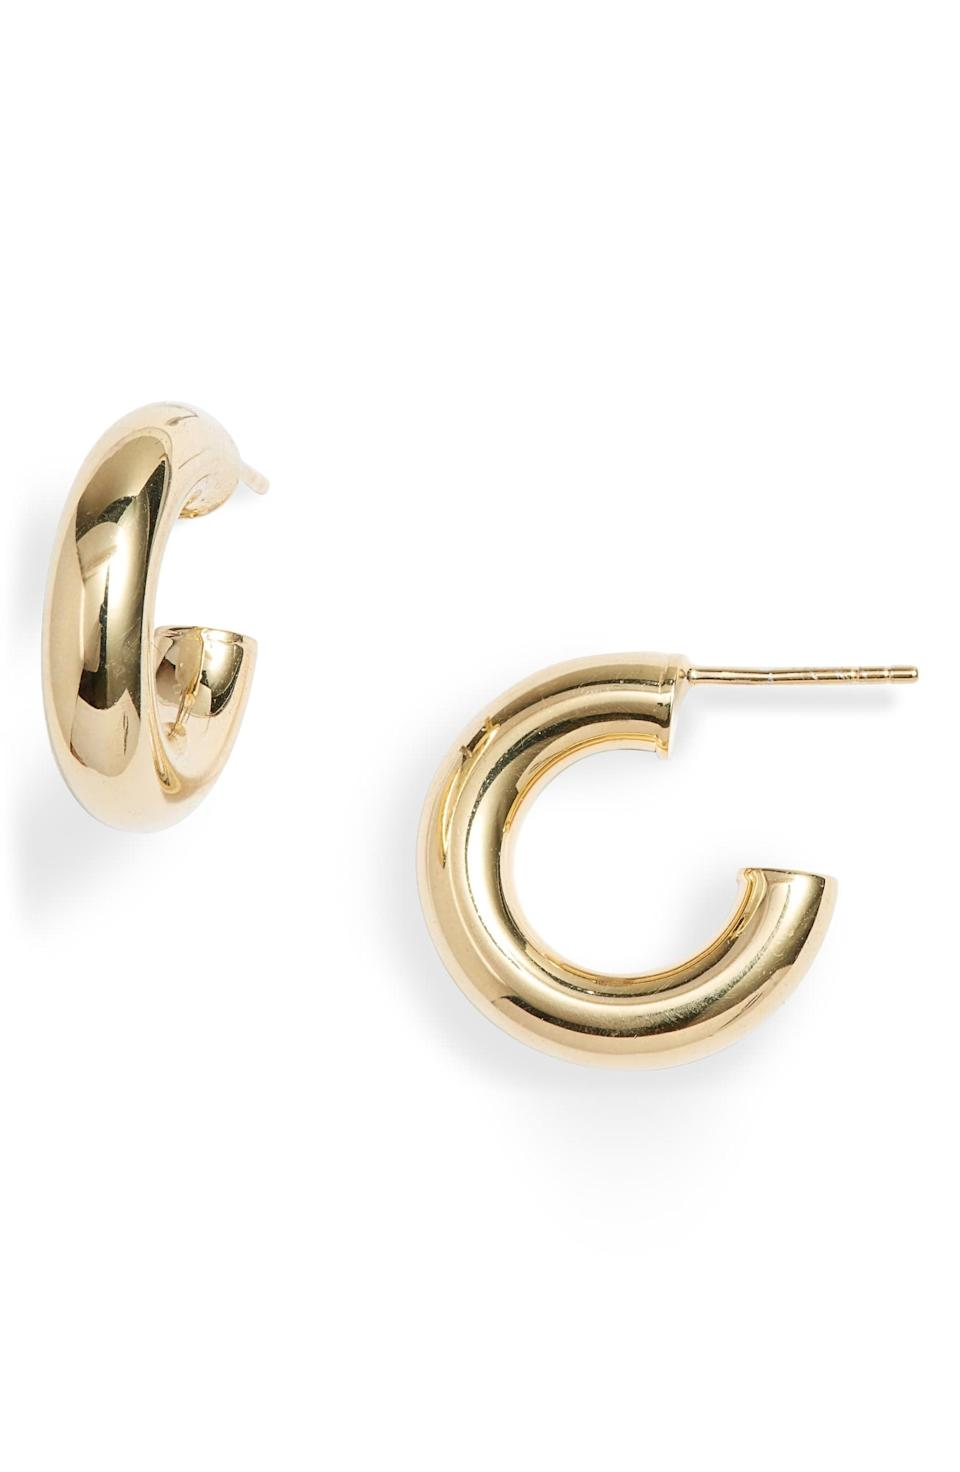 "<p>These <a href=""https://www.popsugar.com/buy/Adina-Jewels-Extra-Small-Thick-Hollow-Hoop-Earrings-510454?p_name=Adina%27s%20Jewels%20Extra%20Small%20Thick%20Hollow%20Hoop%20Earrings&retailer=shop.nordstrom.com&pid=510454&price=58&evar1=fab%3Aus&evar9=36291197&evar98=https%3A%2F%2Fwww.popsugar.com%2Ffashion%2Fphoto-gallery%2F36291197%2Fimage%2F46982998%2FAdina-Jewels-Extra-Small-Thick-Hollow-Hoop-Earrings&list1=shopping%2Choliday%2Cwinter%2Cgift%20guide%2Cwinter%20fashion%2Choliday%20fashion%2Cfashion%20gifts&prop13=api&pdata=1"" rel=""nofollow noopener"" class=""link rapid-noclick-resp"" target=""_blank"" data-ylk=""slk:Adina's Jewels Extra Small Thick Hollow Hoop Earrings"">Adina's Jewels Extra Small Thick Hollow Hoop Earrings</a> ($58) are the perfect stocking stuffer.</p>"